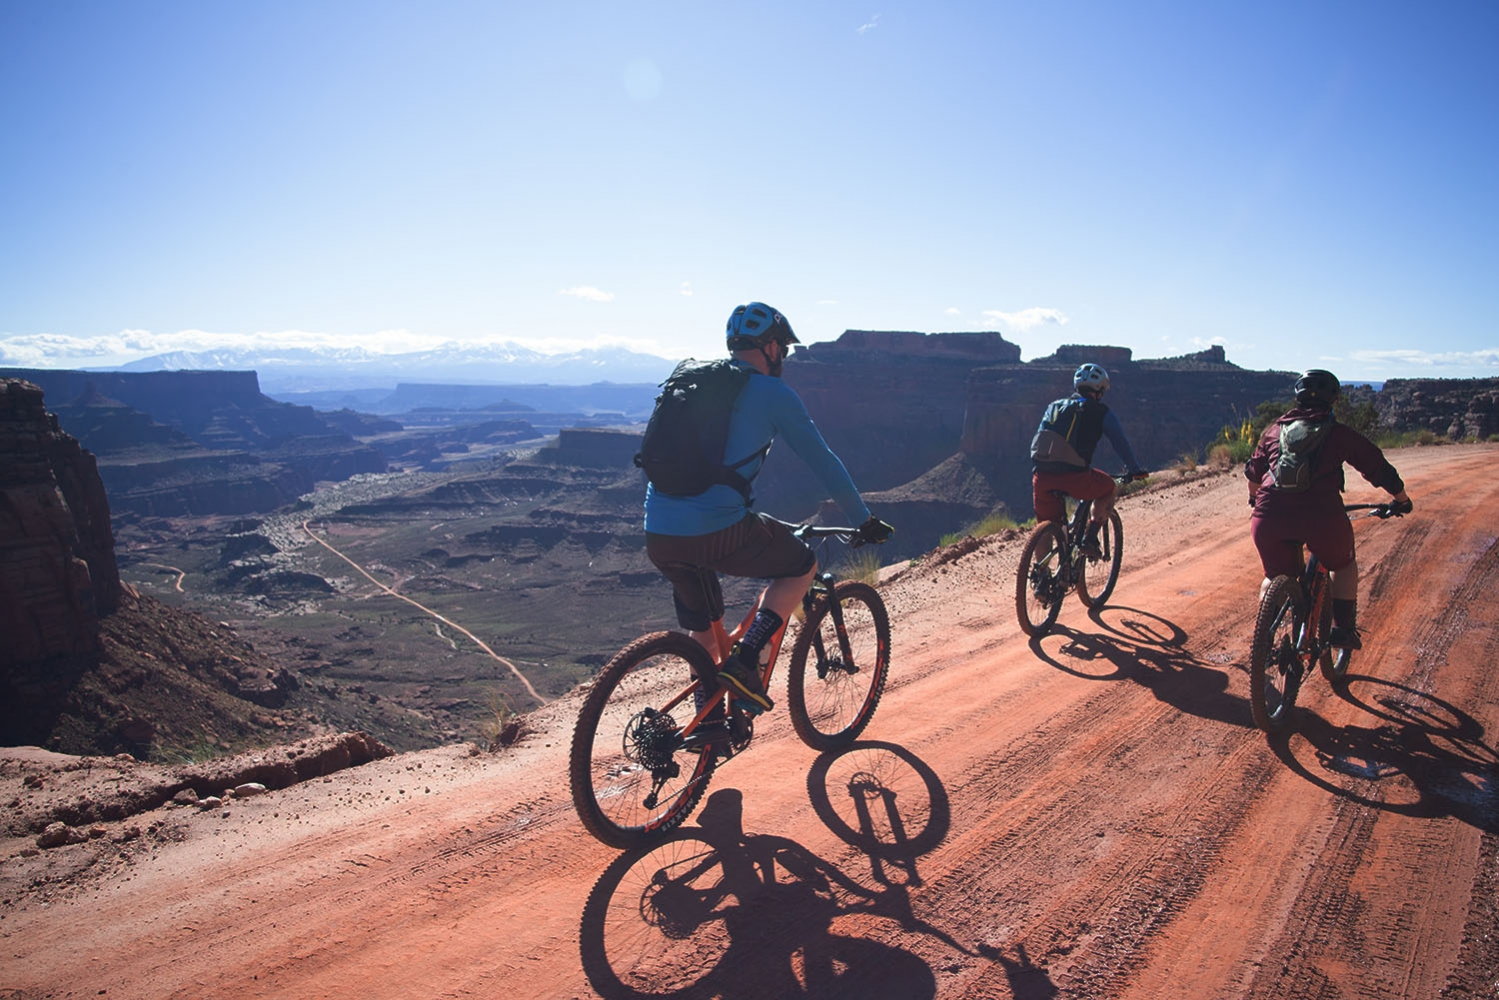 Canyonlands-National-Park-Full-Day-Guided-Mtb-Tour-Top-of-Shafer-LaSals-1